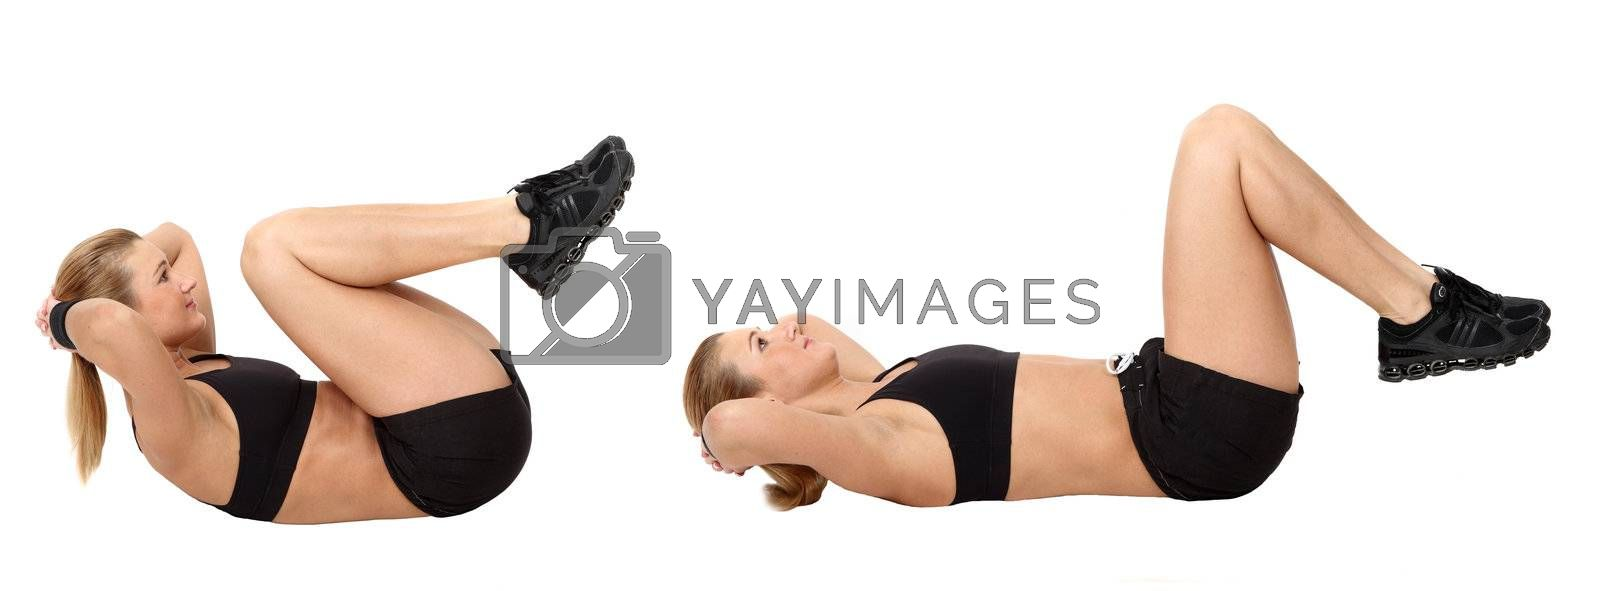 The girl, the instructor shows different exercises